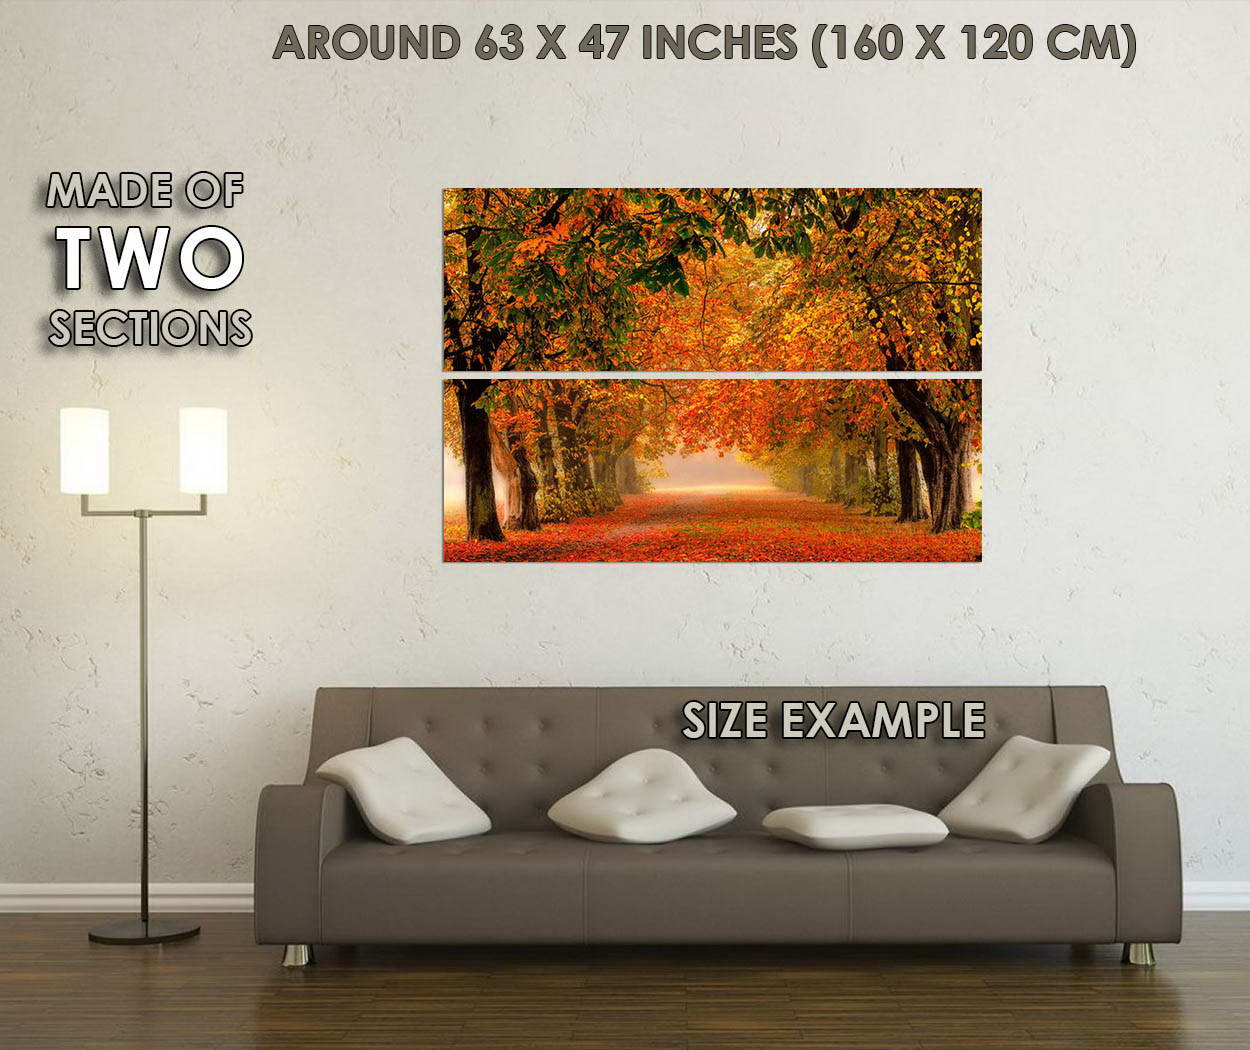 10628-Autumn-Fallen-Leaves-Forest-Path-Nature-Trees-LAMINATED-POSTER-CA thumbnail 6